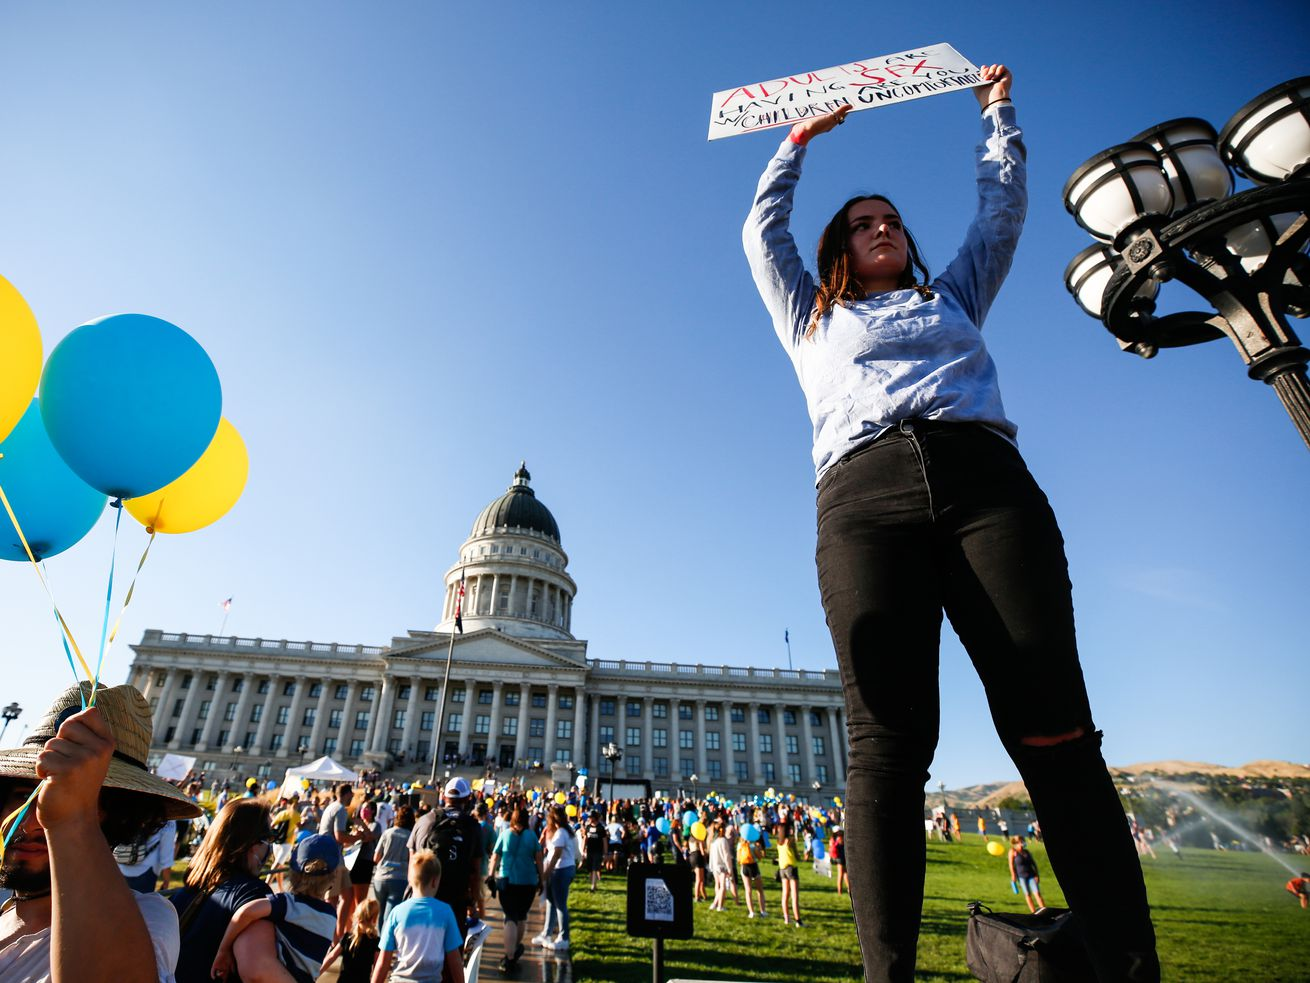 A protester hoists a sign during a protest at the Capitol in Salt Lake City on Thursday, July 30, 2020. The protest was held to commemorate World Human Trafficking Awareness Day and raise awareness about human trafficking.